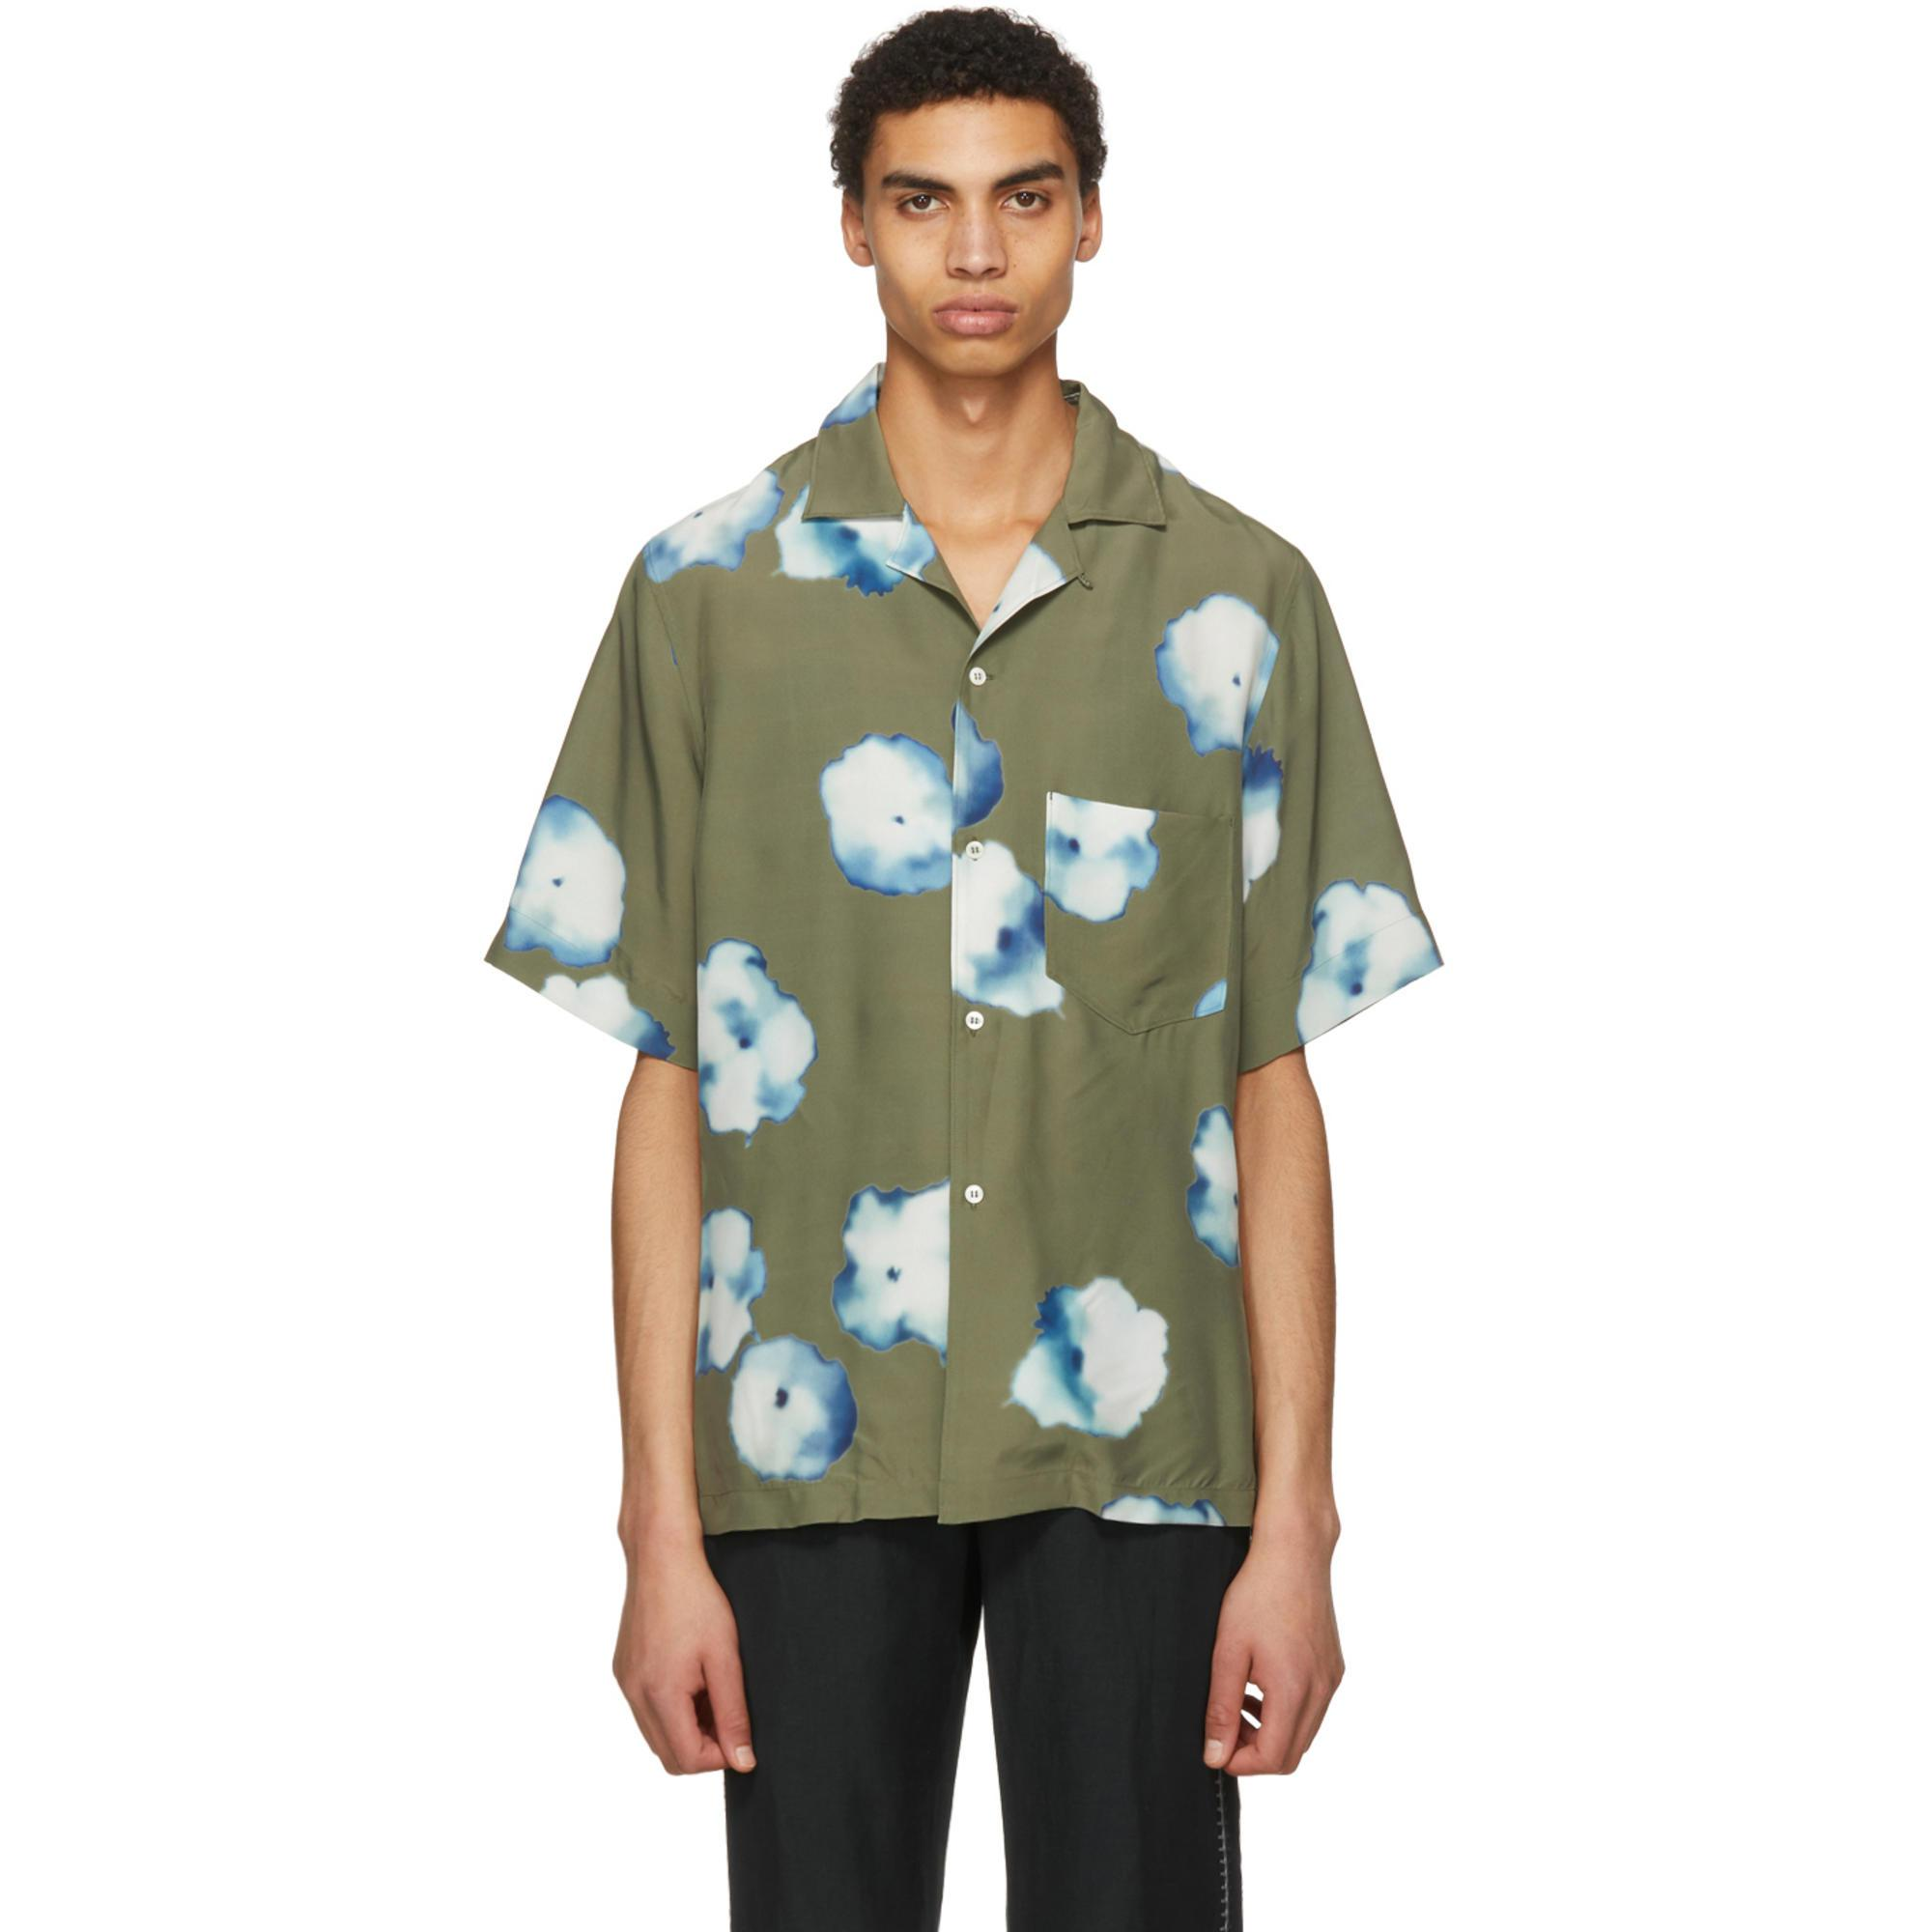 be26980267 Lyst - Acne Studios Green Elms Print Shirt in Green for Men